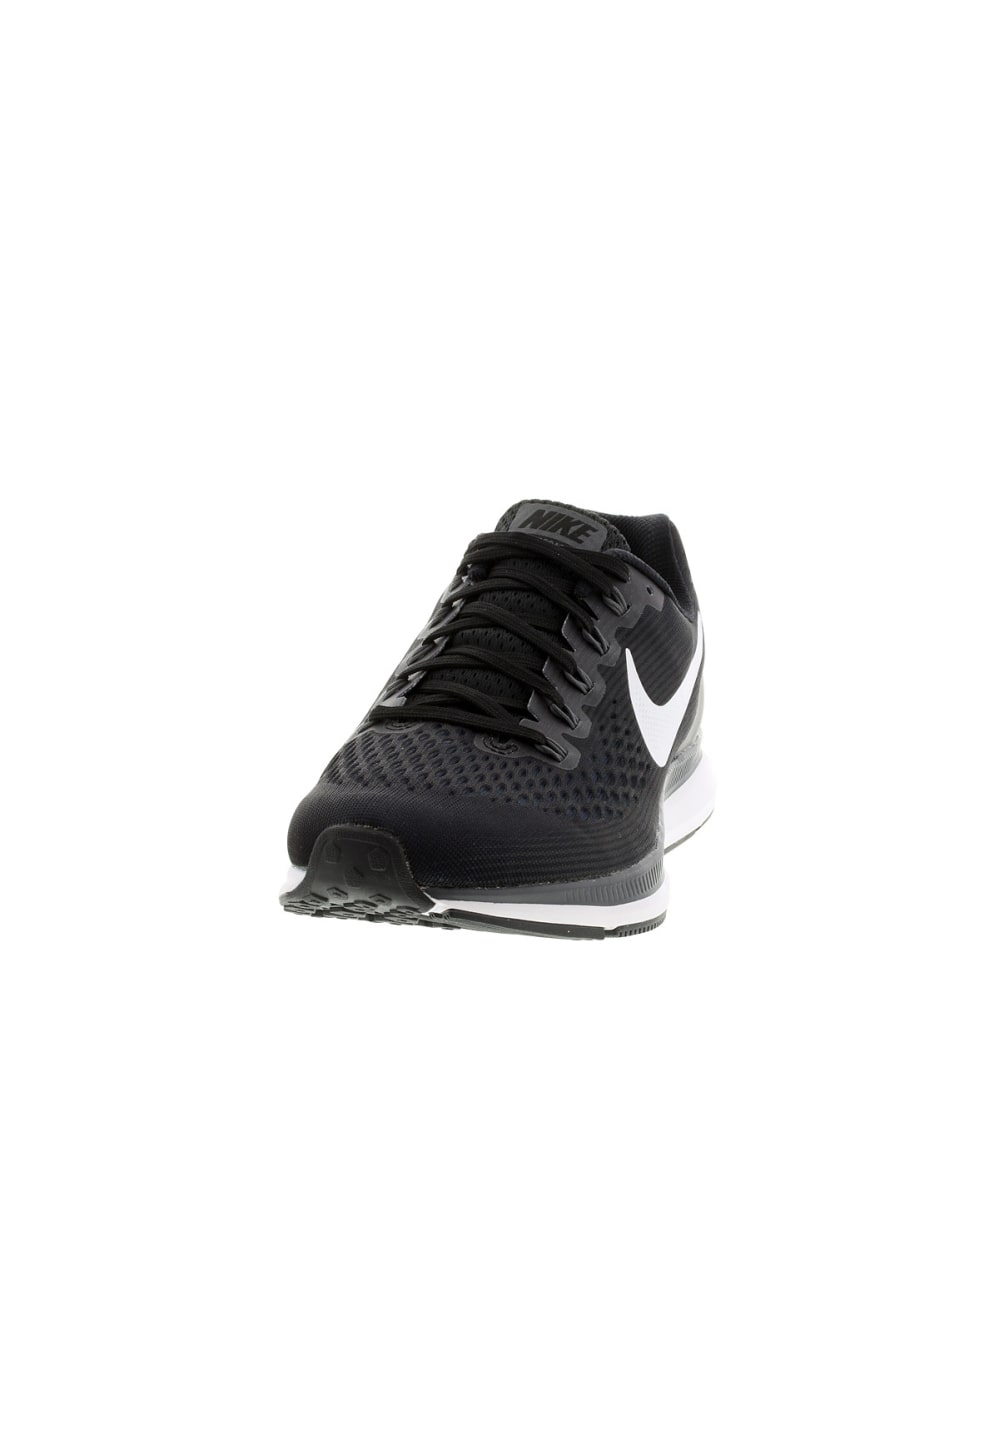 promo code aff79 f4f14 Next. Nike. Air Zoom Pegasus 34 - Chaussures running pour Homme